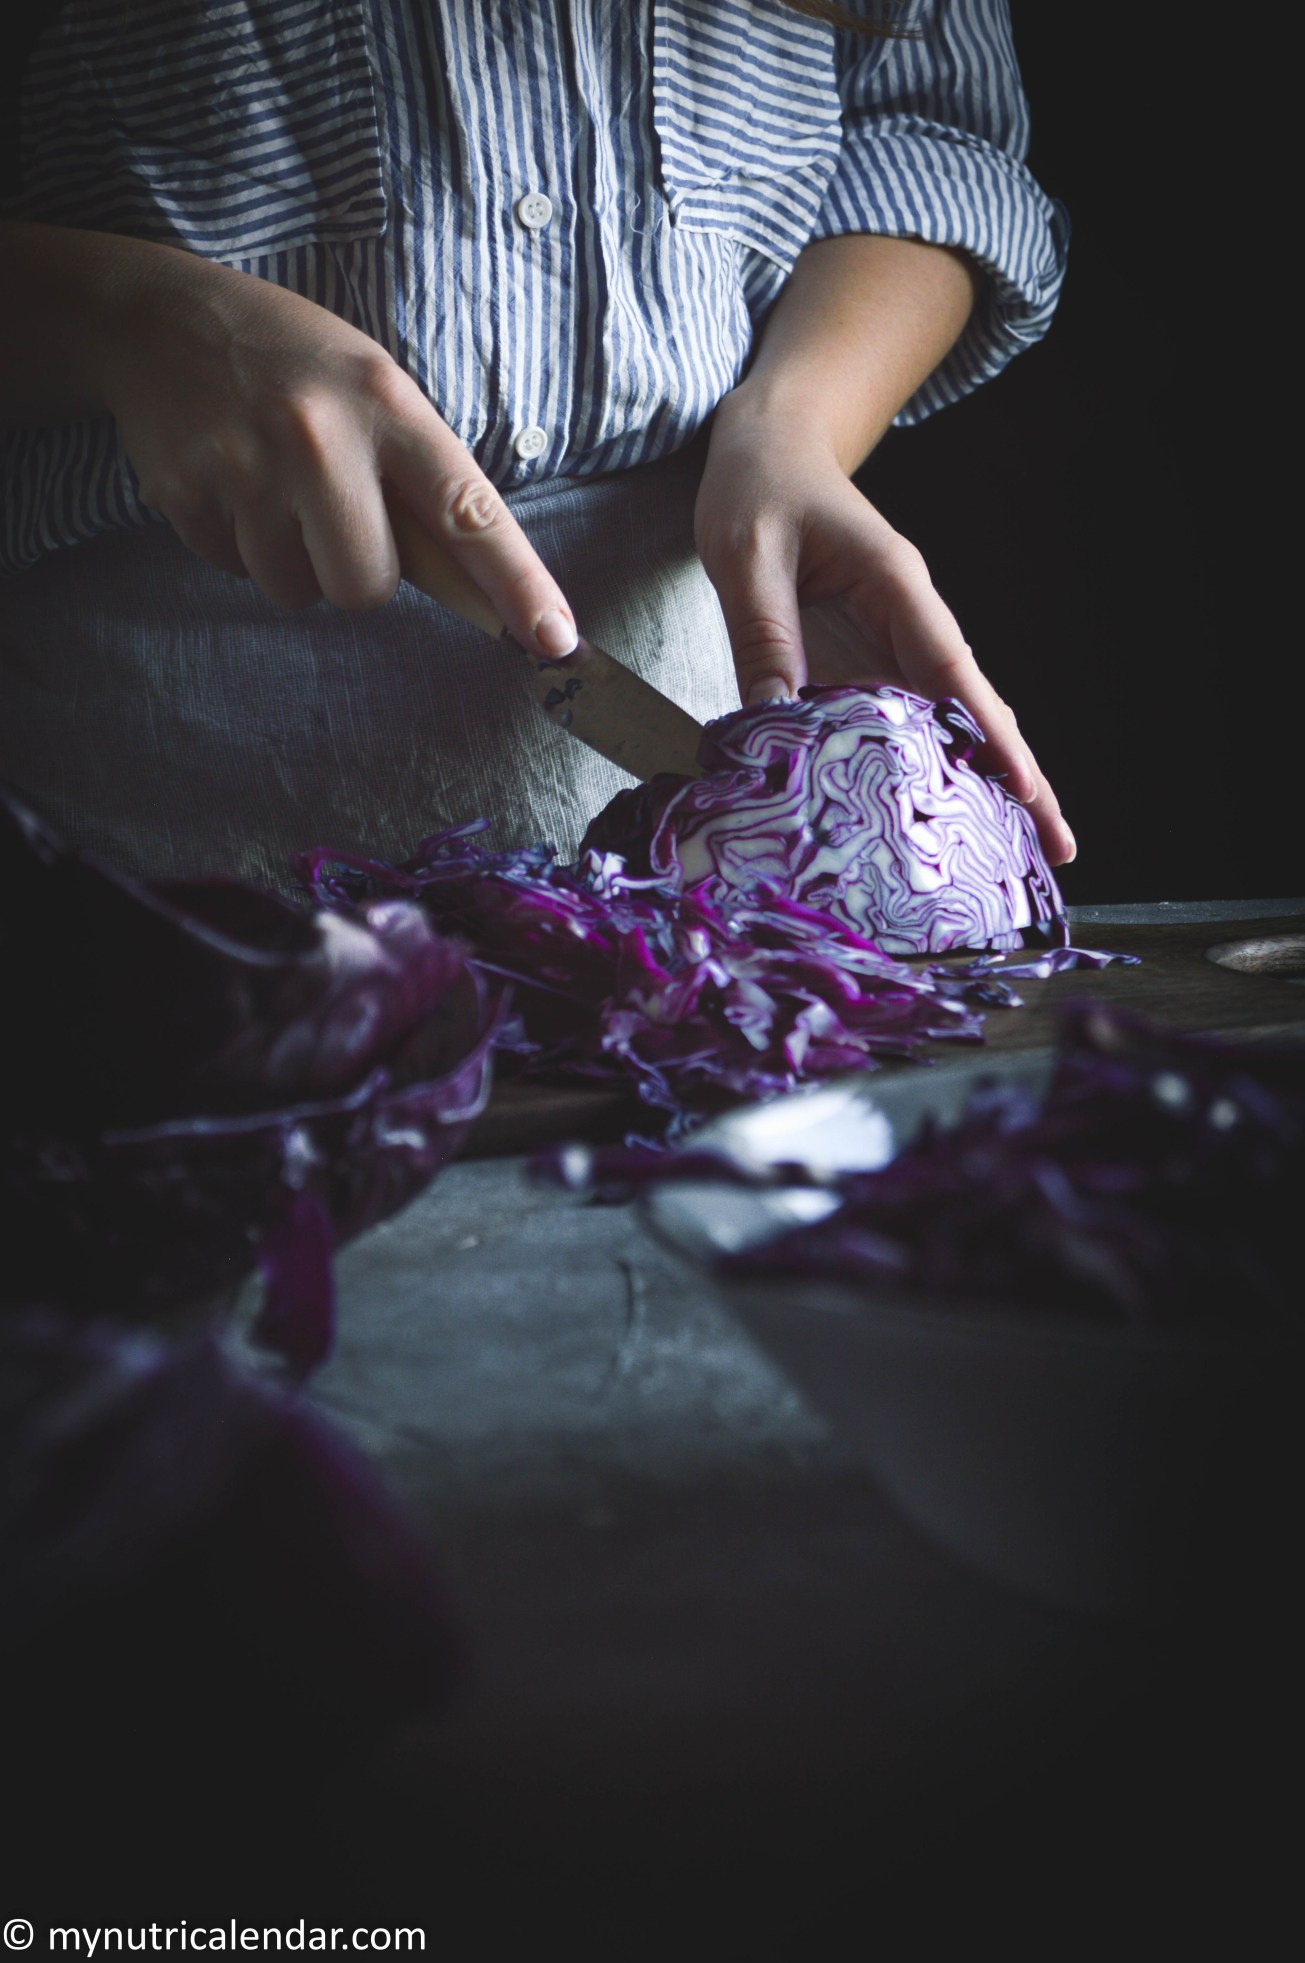 red-cabbage-grapes-apple-mint-salad-seasonal-vegetables-autumn-produce-food-photography-moody-story-telling-11